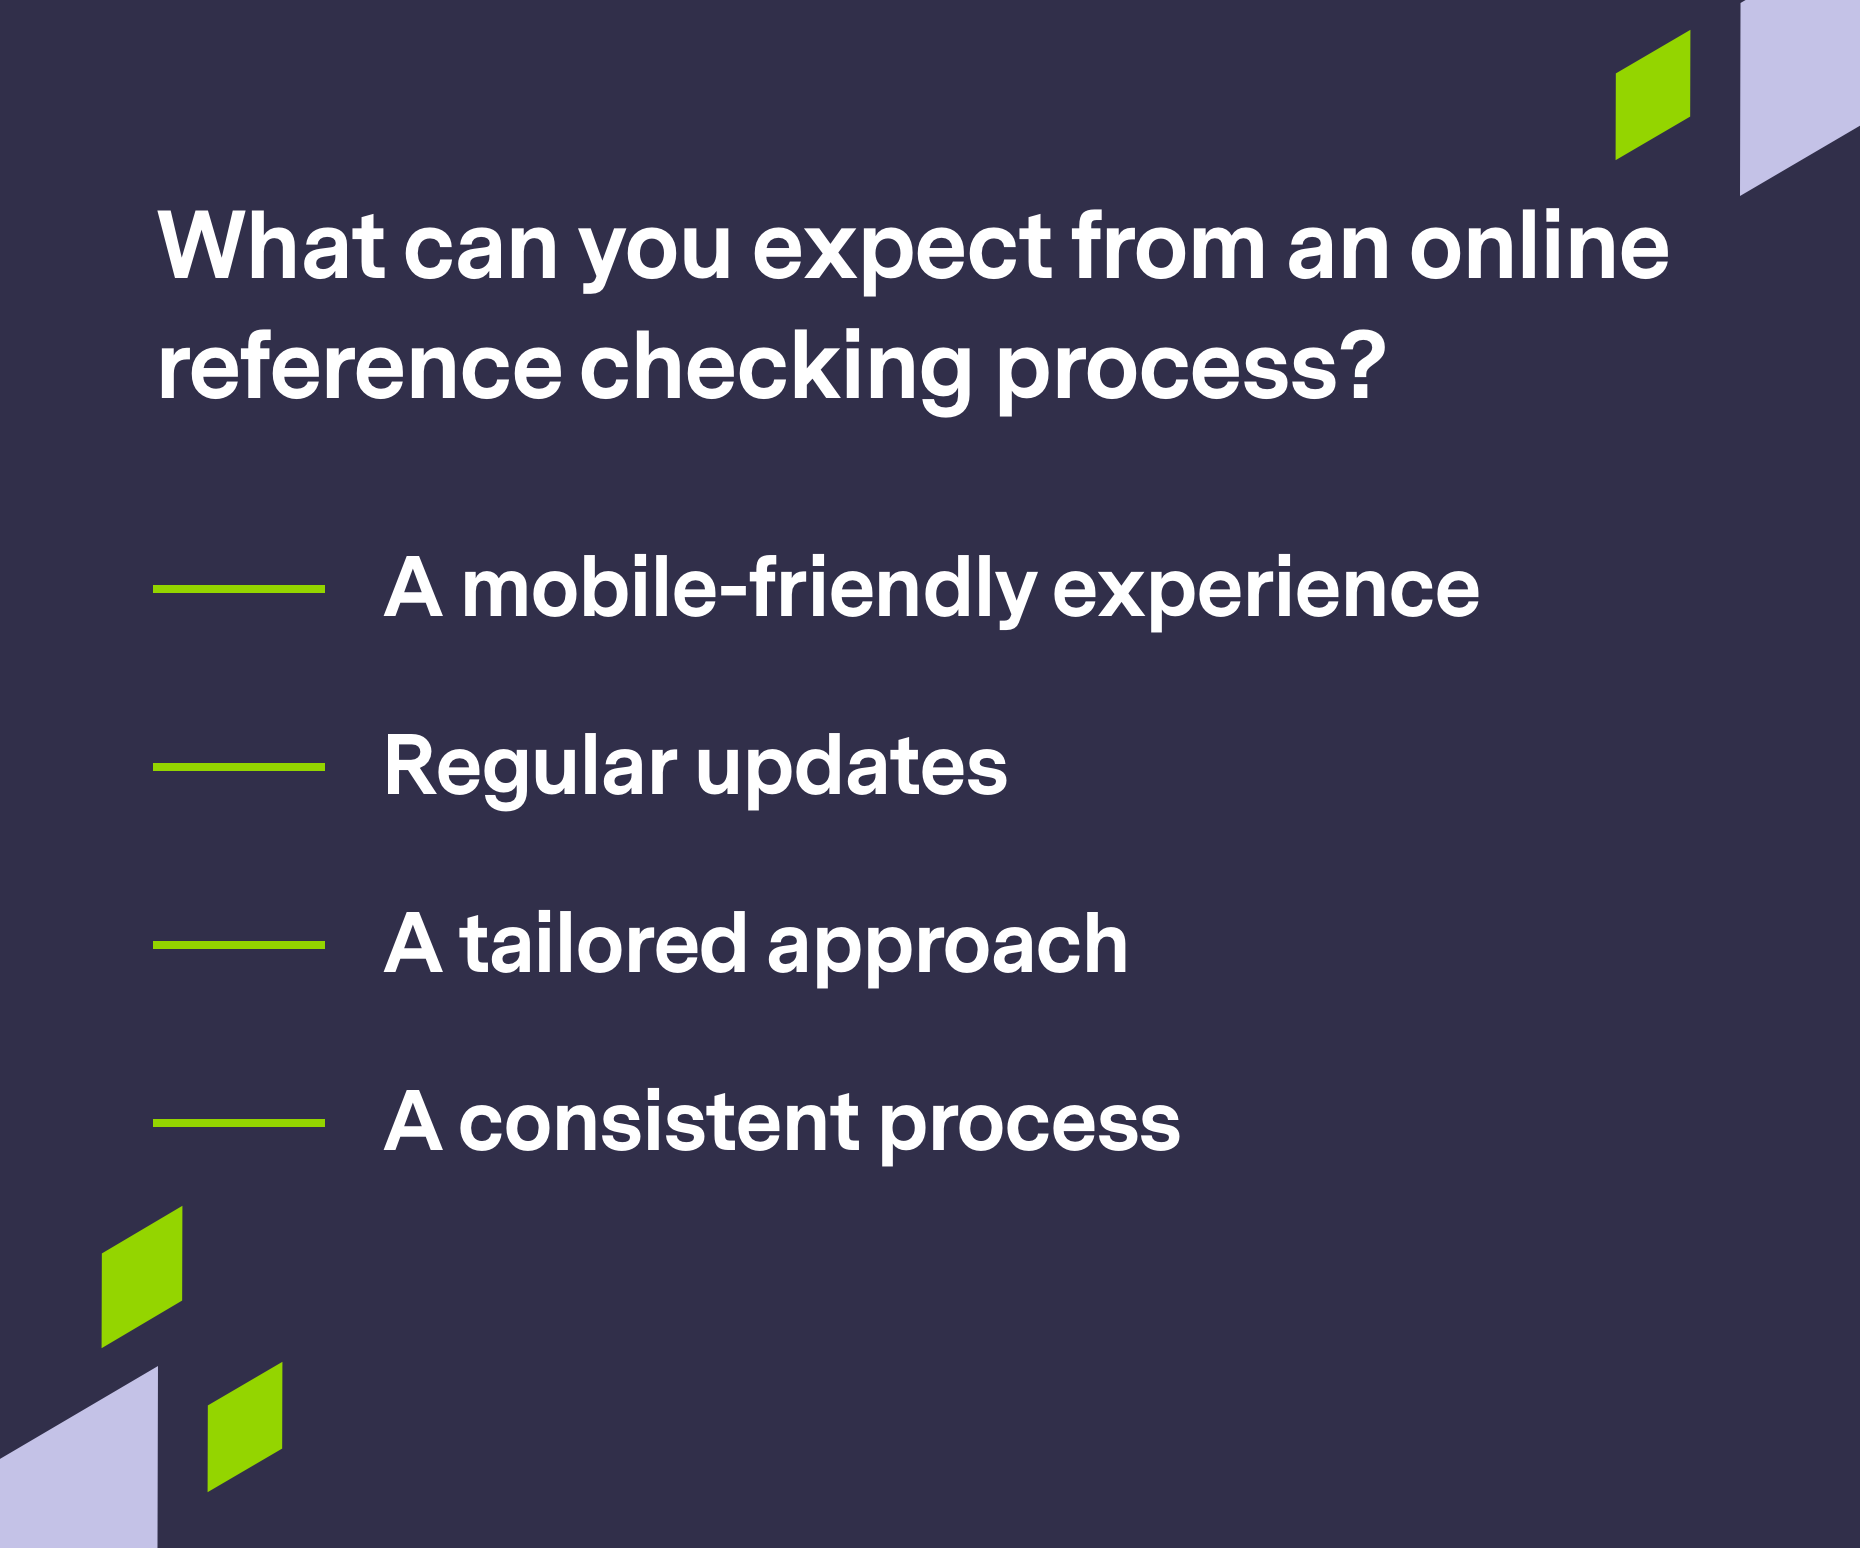 Branded graphics for reference checking process